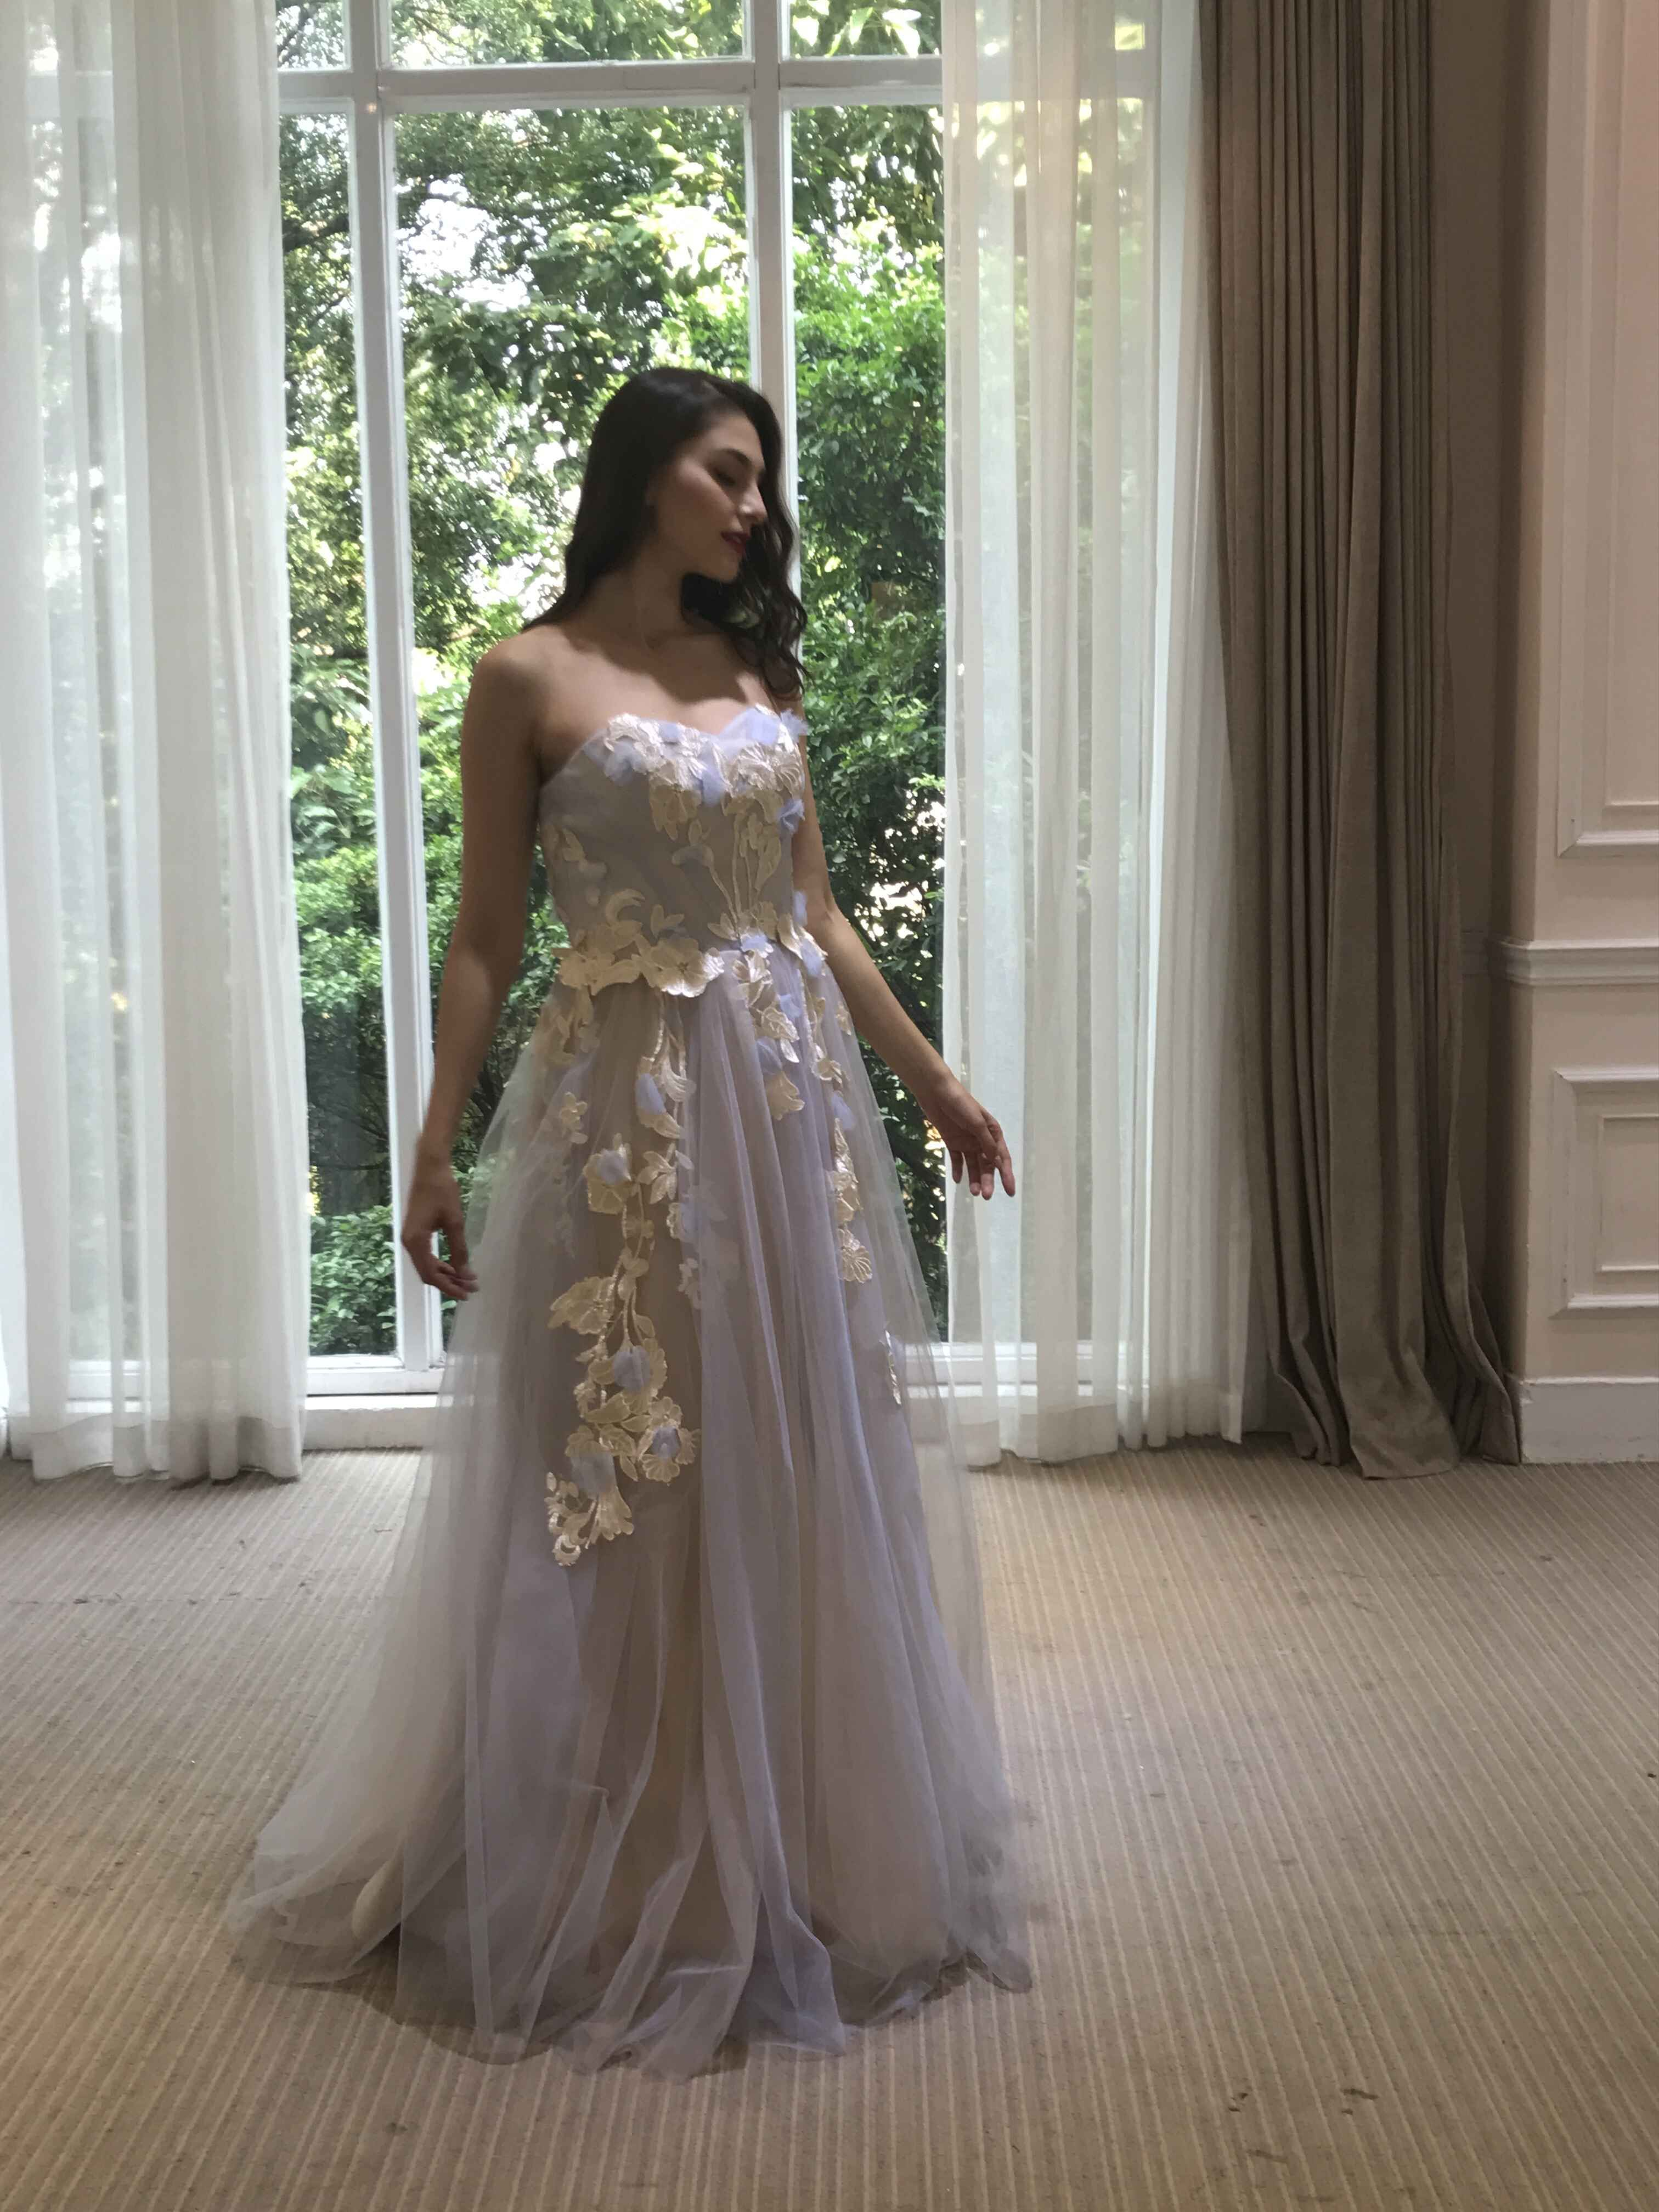 Pastel colored strapless wedding dress with embroidery